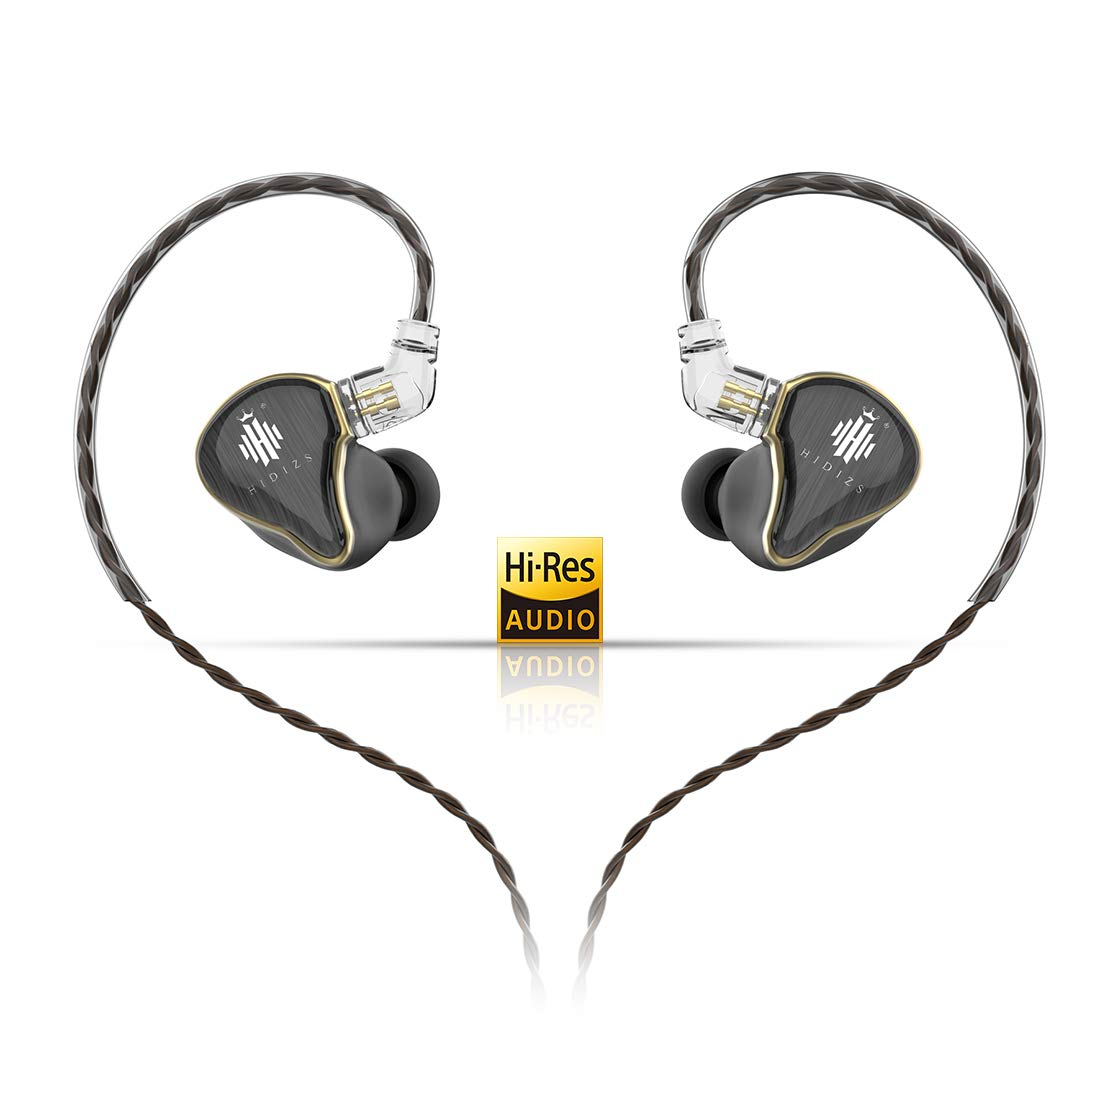 HIDIZS MS4 HiFi in-Ear Monitor Headphones, Hi-Res Audio IEM Earphones with Detachable Cable Four Driver Hybrid (1 Dynamic + 3 Knowles BA) Noise-Isolating Musician Headset - Gears For Ears